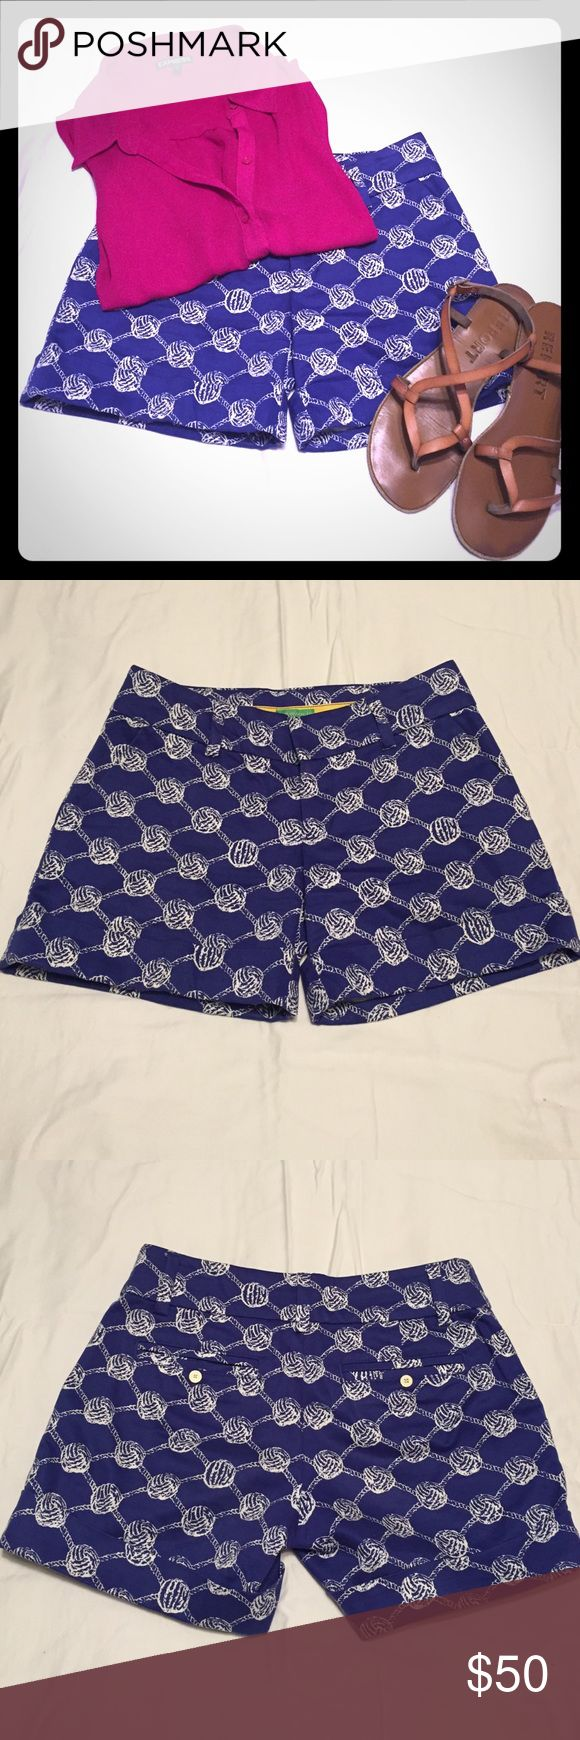 Lilly Pulitzer Mari Time shorts Perfect and timeless shorts! Cobalt blue shorts with white nautical knots is perfect for any summer event. They're super easy to dress up or down. Fantastic like new condition - no rips, tears or stains and no sign of use! Lilly Pulitzer Shorts